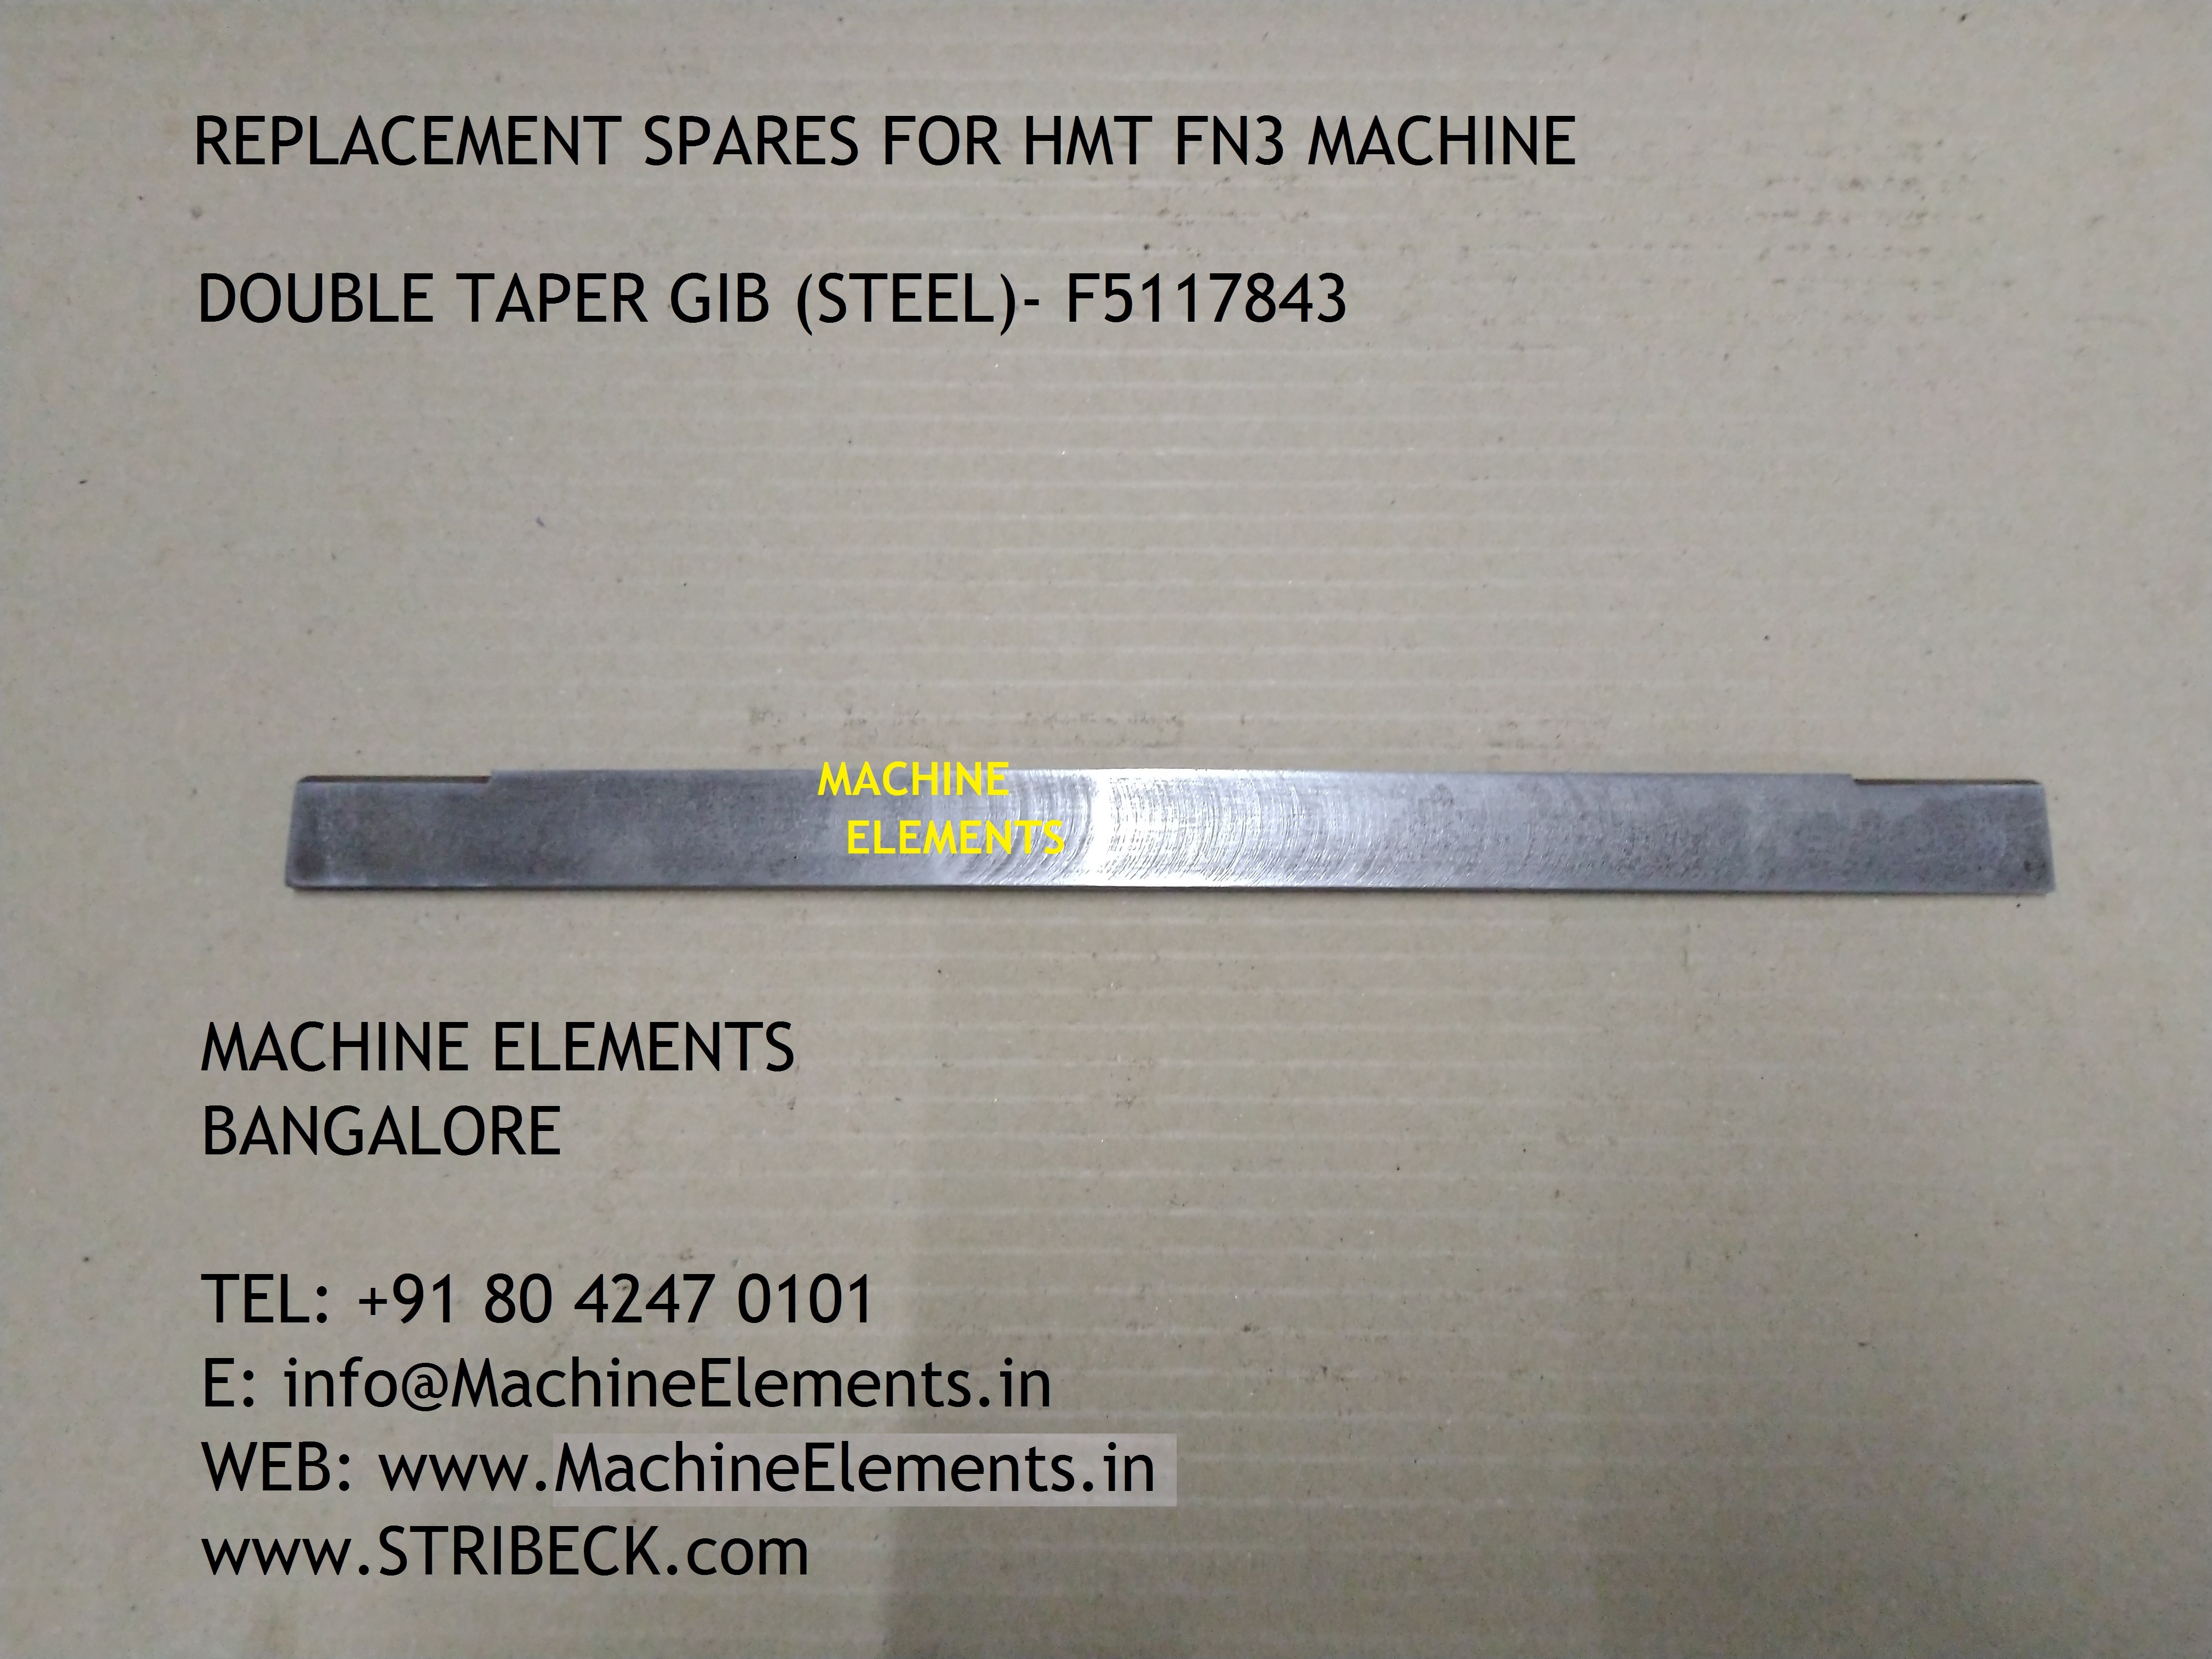 DOUBLE TAPER GIB (STEEL) - F5117843